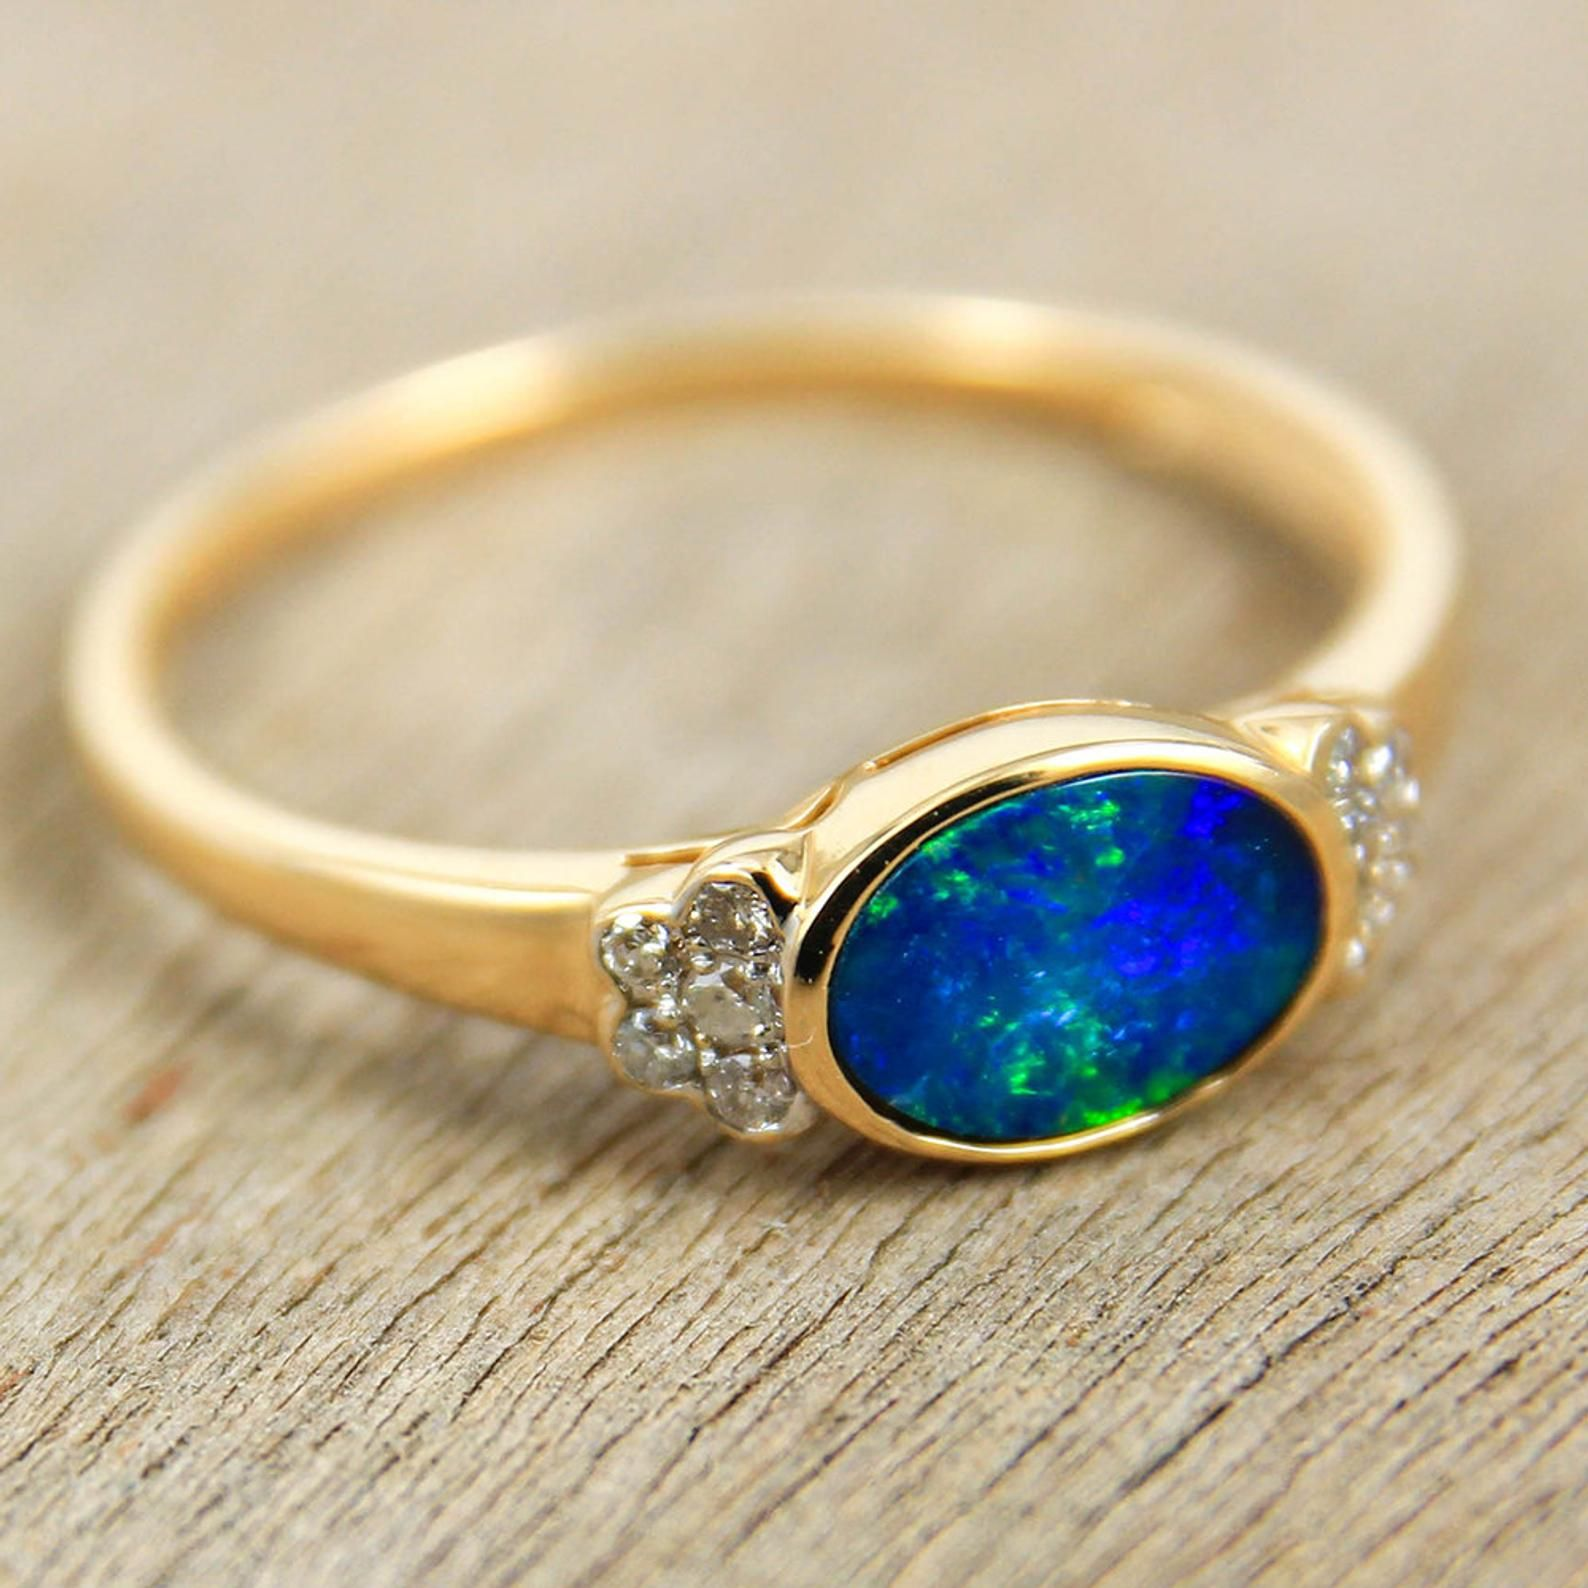 Exceptional Natural Black Australian Opal Ring, Genuine